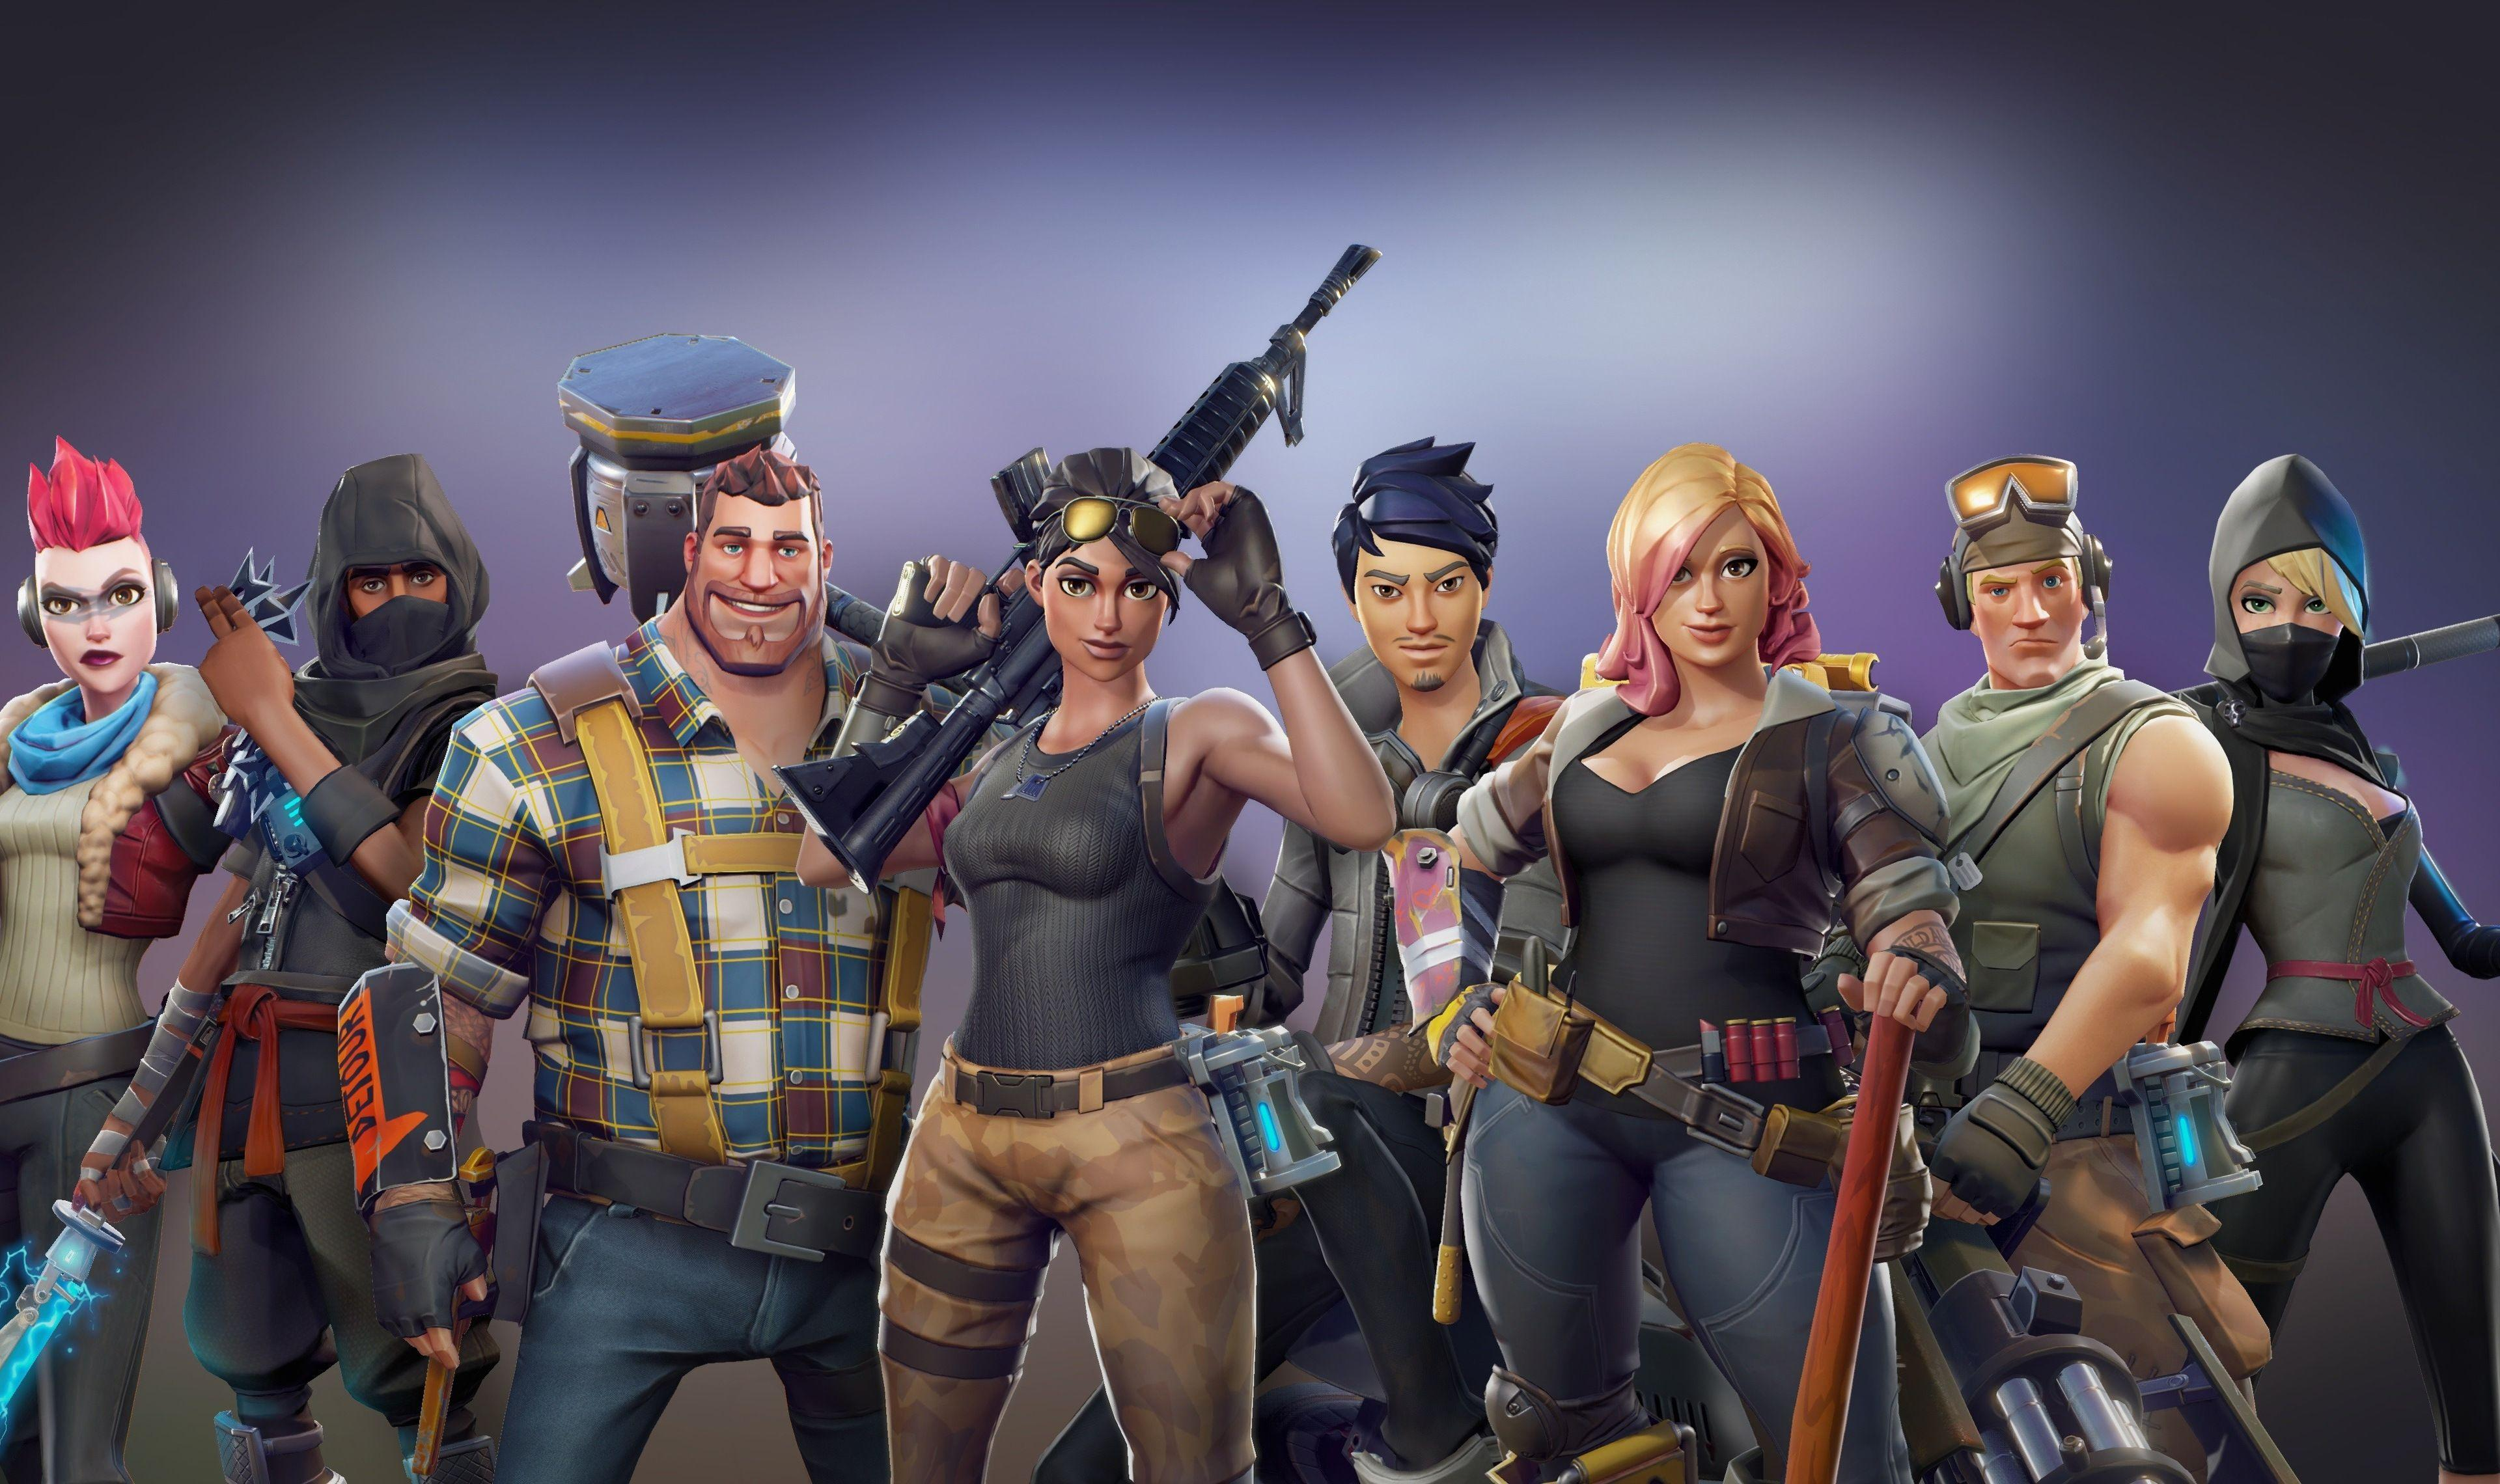 Download 3840x2400 wallpapers all characters, video game, fortnite